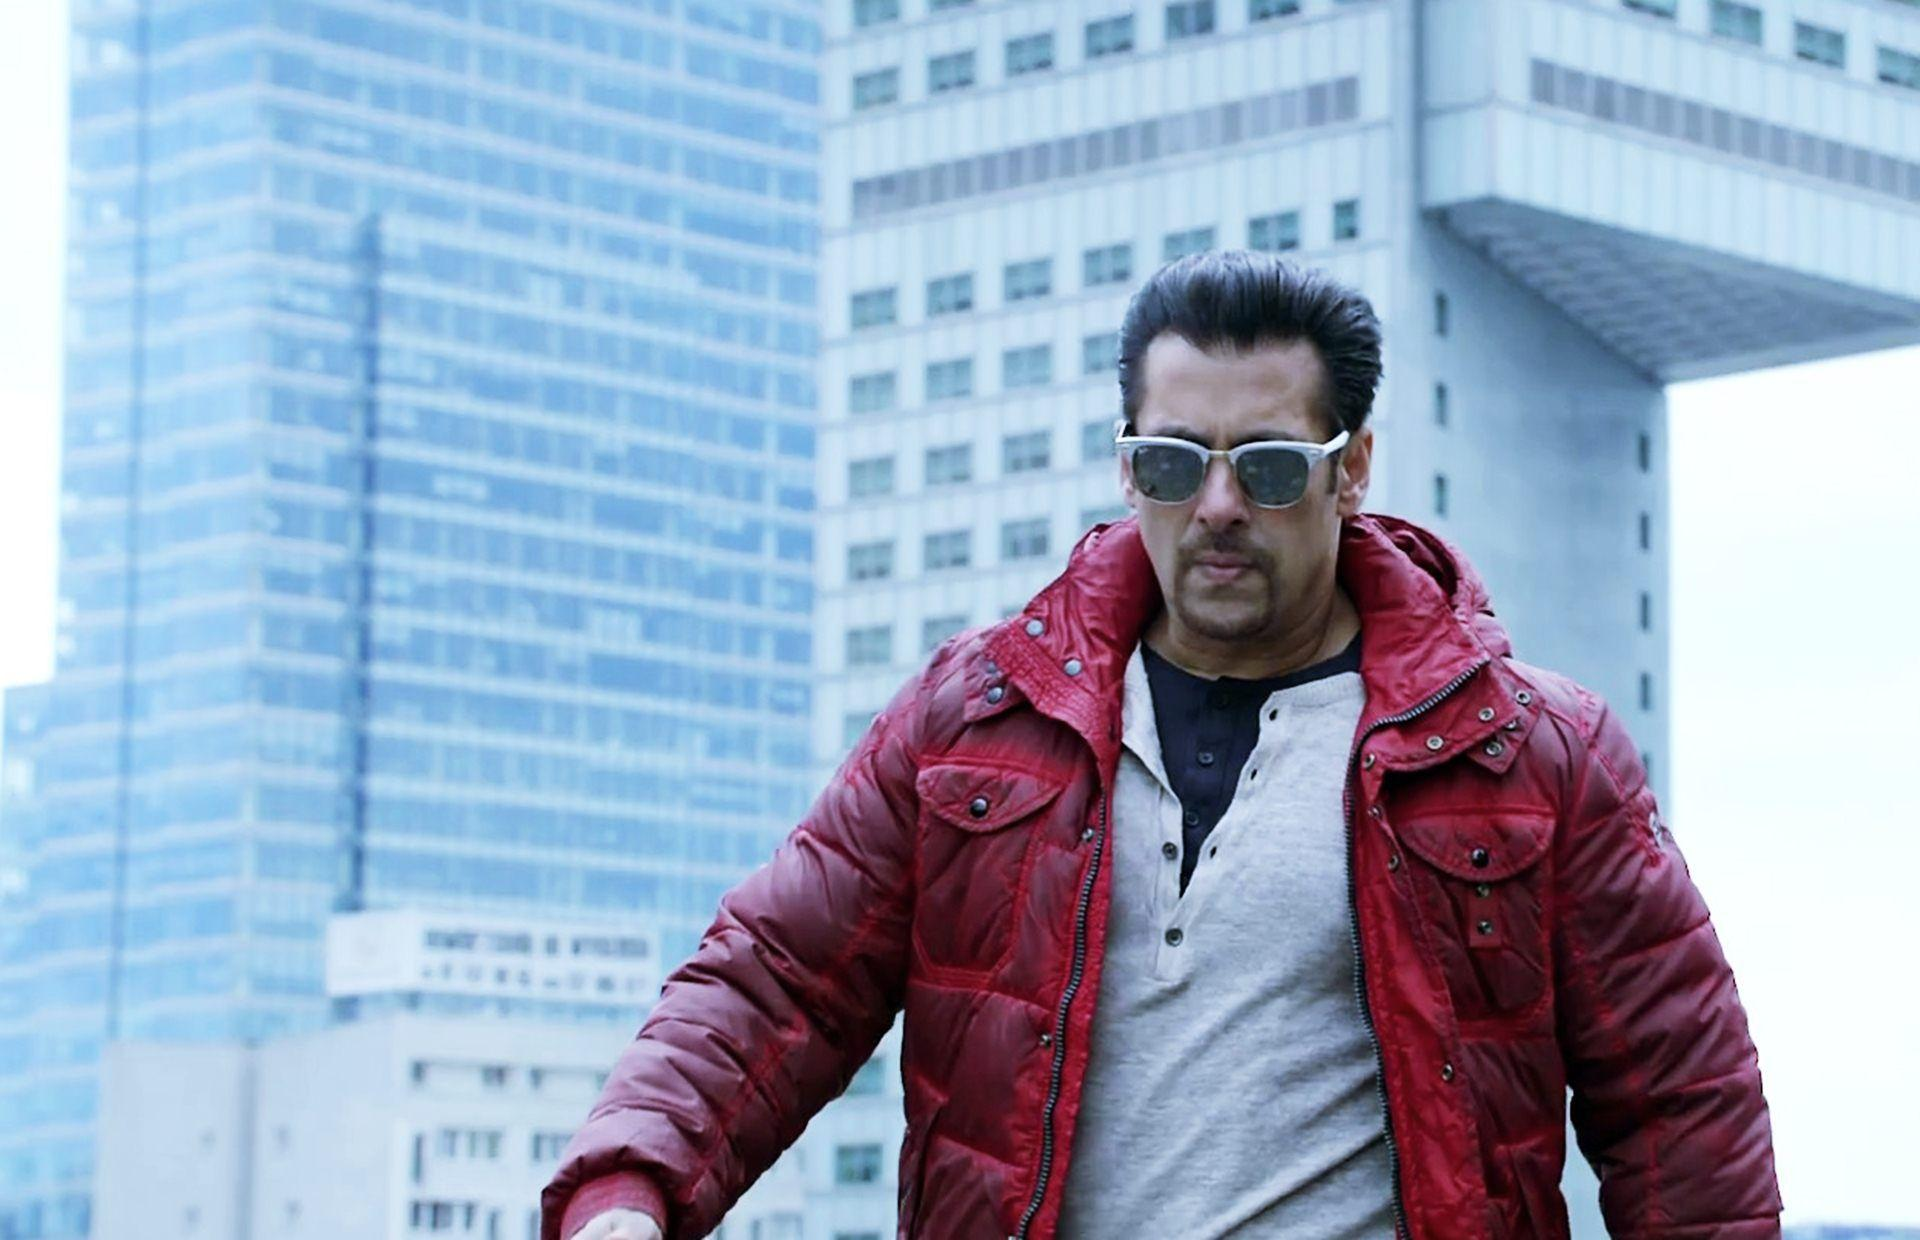 Salman Khan Wallpapers, Pictures, Image